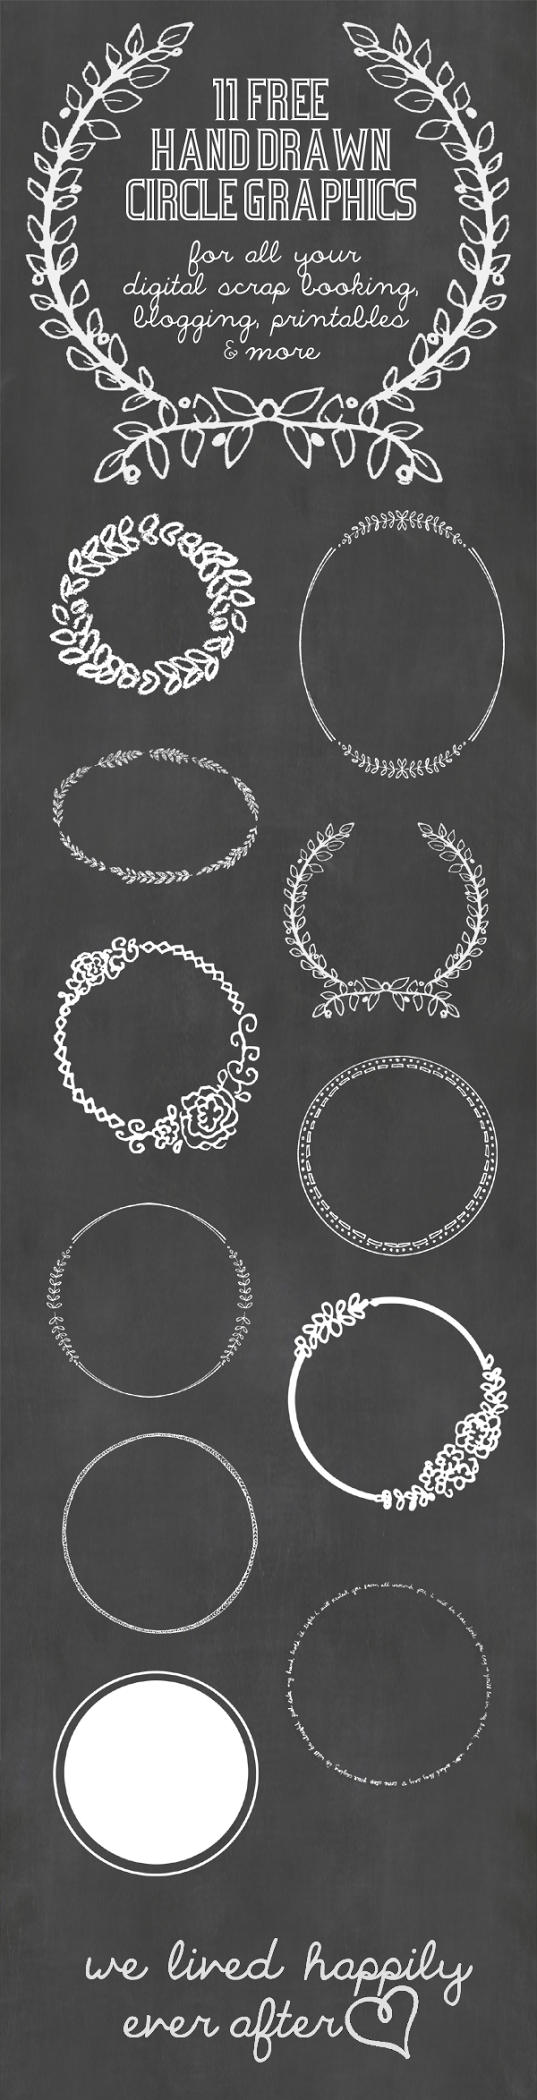 circle chalkboard printable digital images to download for personal use